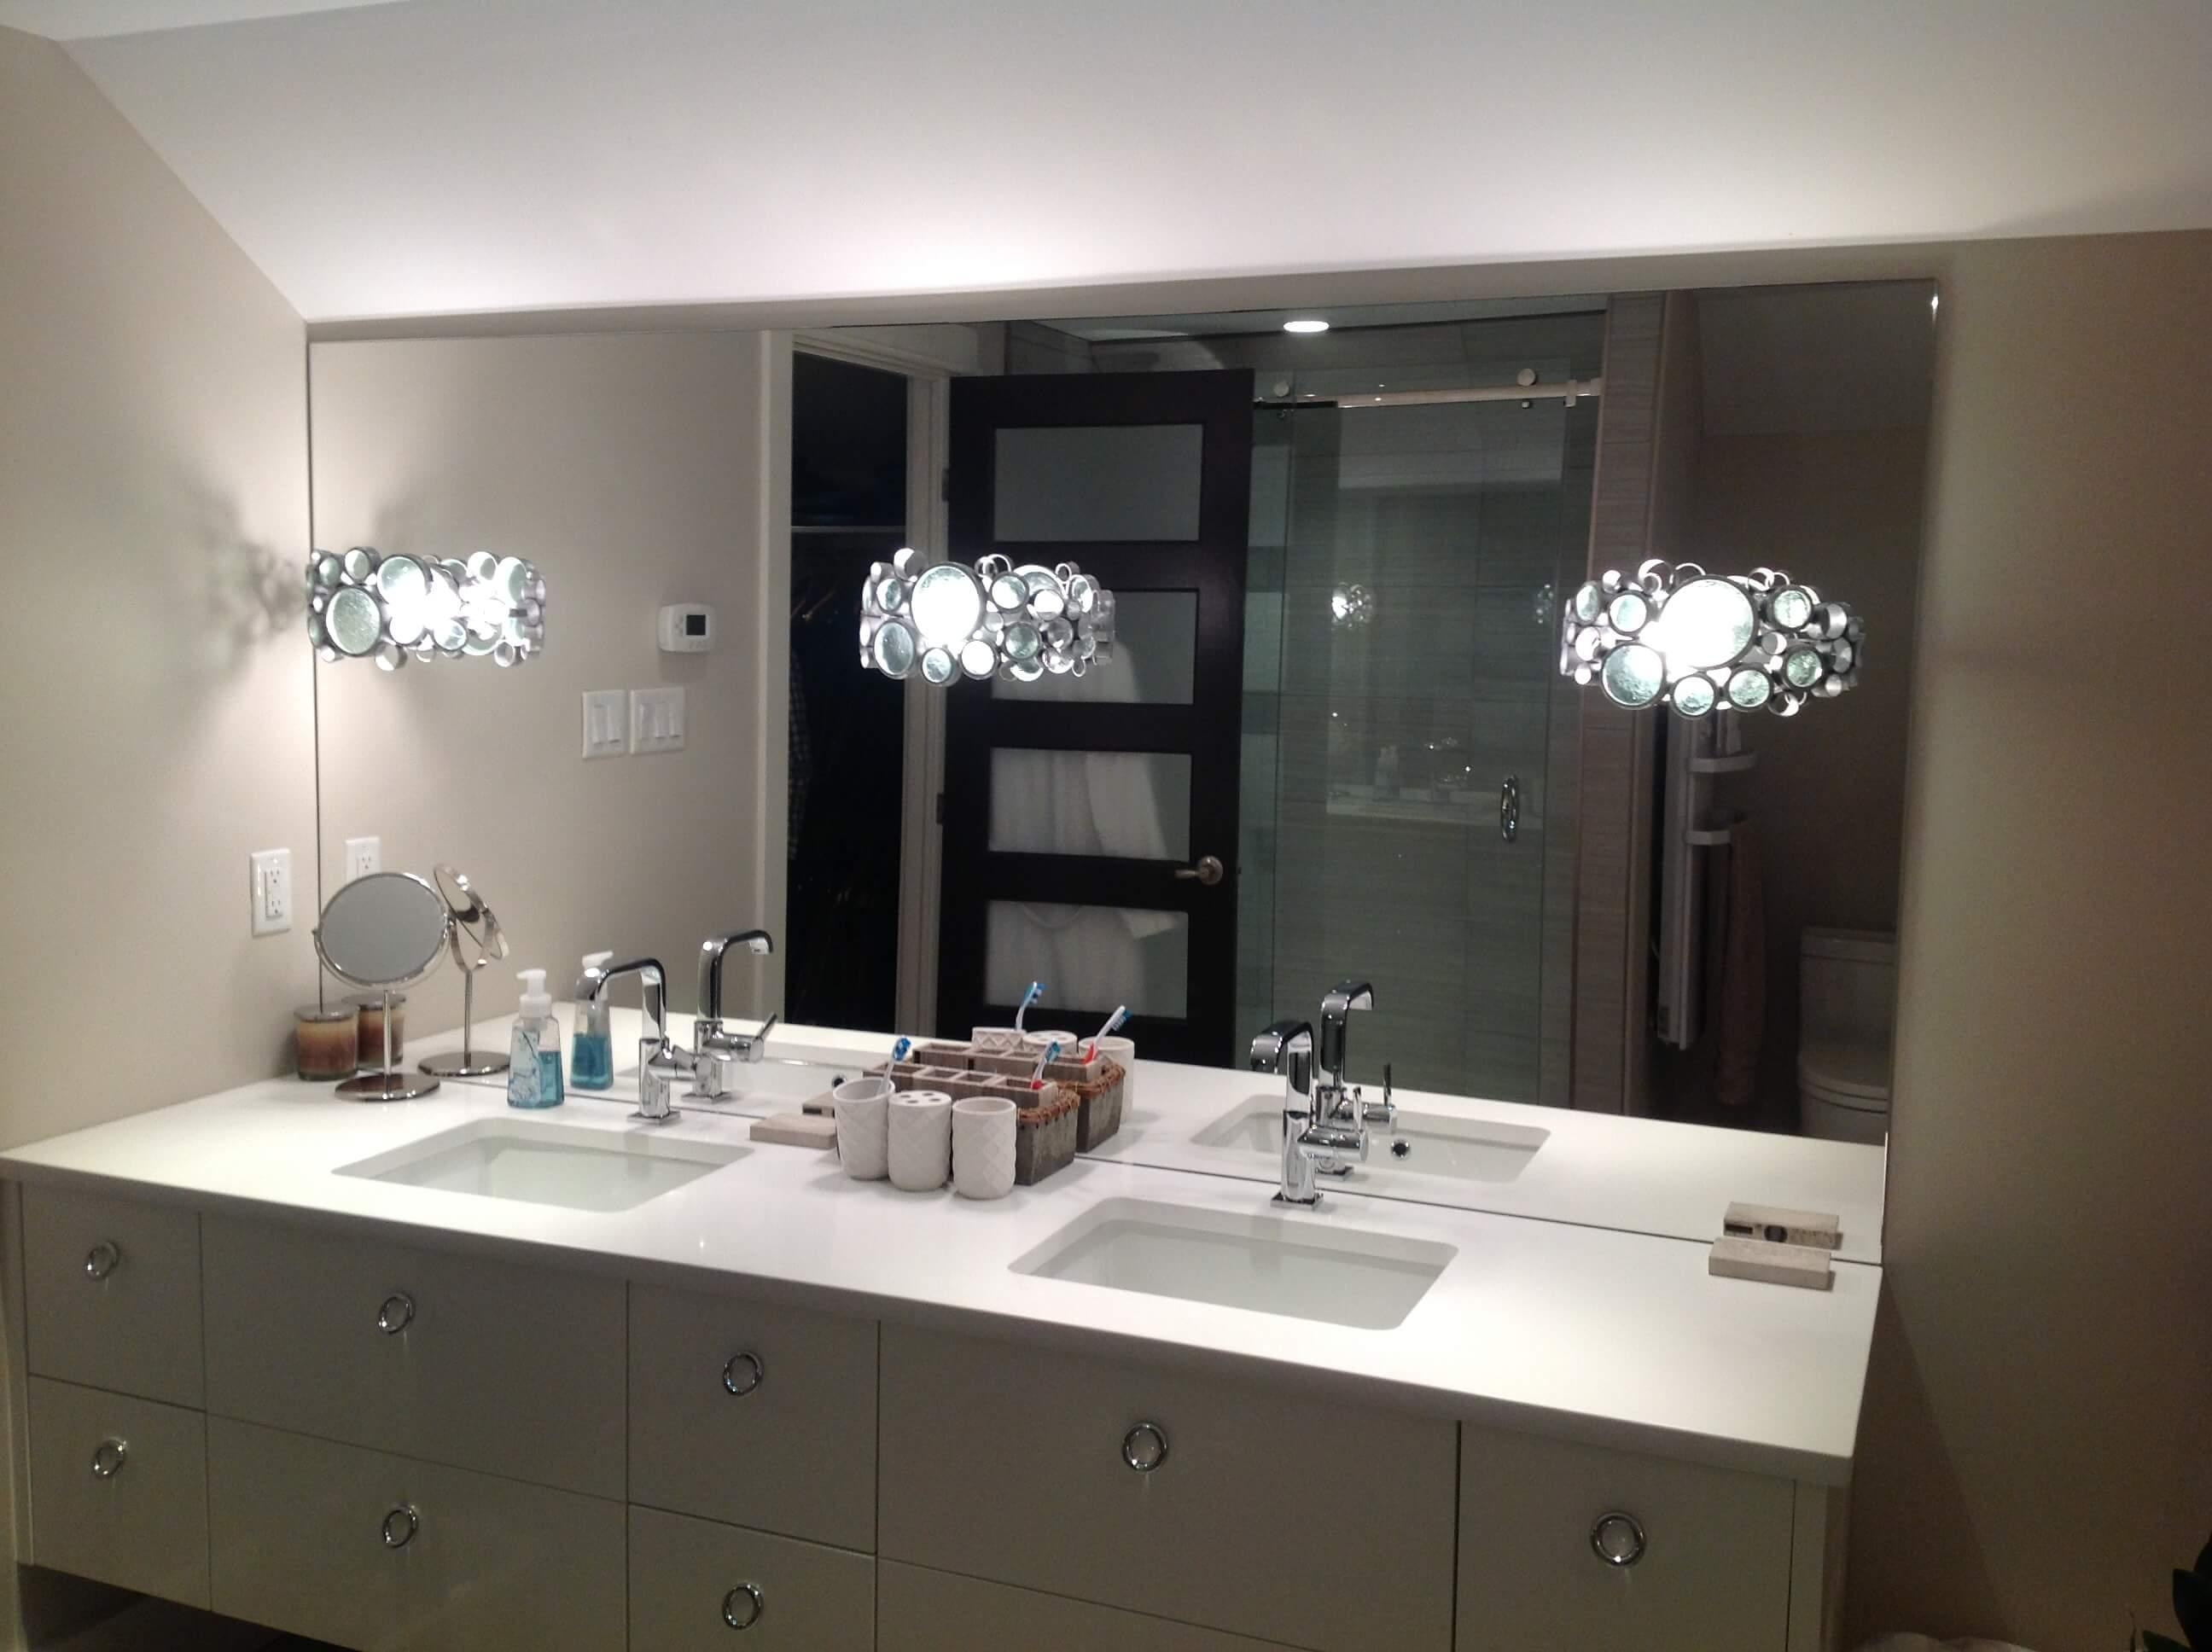 Custom Vanity Mirrors | Pars Glass In Custom Sized Mirrors (Image 12 of 20)